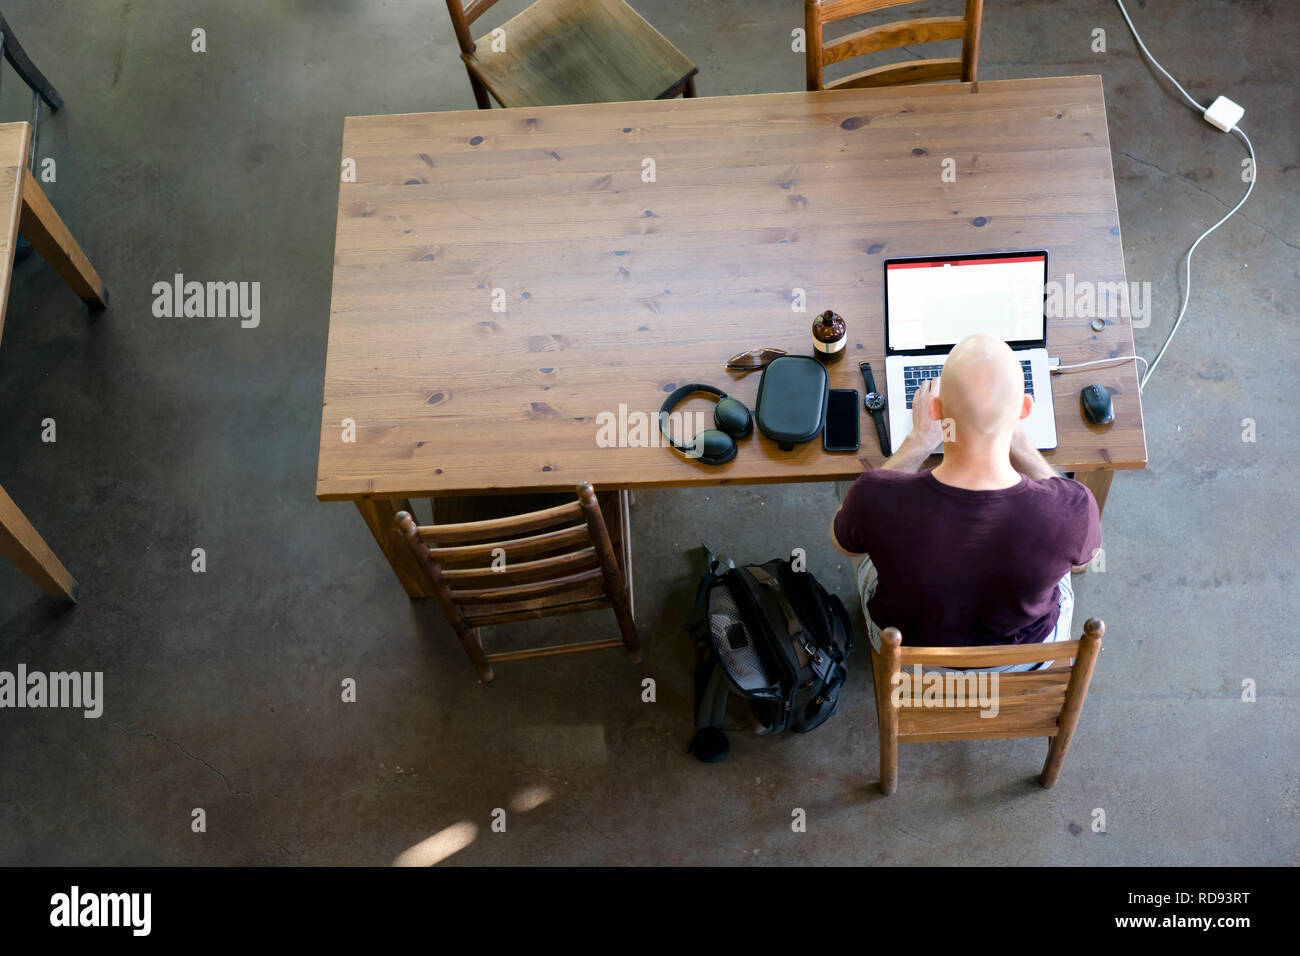 A man in t-shirt working on a laptop is closely watching changes on the laptop display sitting at rectangular wooden table in a local popular coffee s - Stock Image